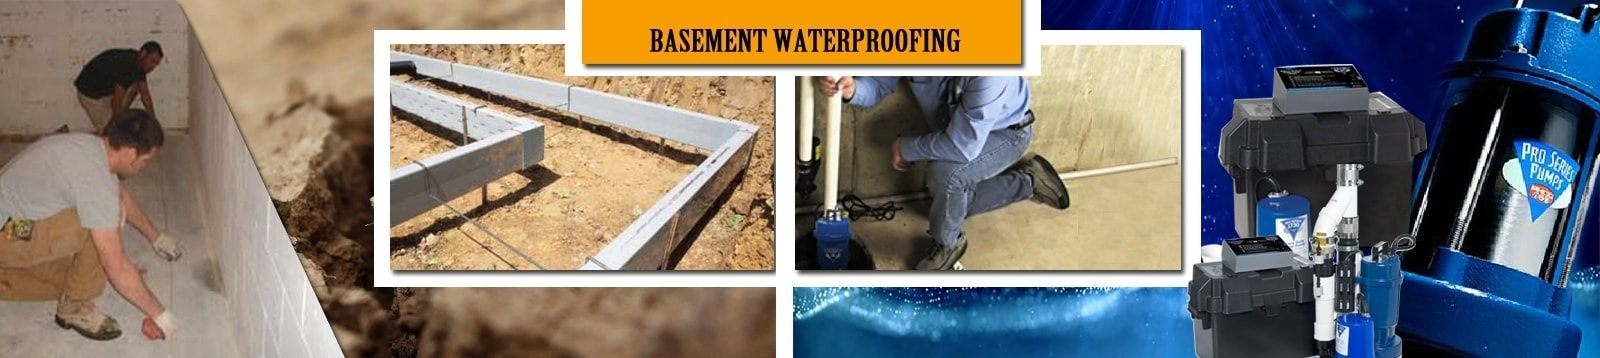 basement waterproofing services in Eastern Nebraska and Western Iowa